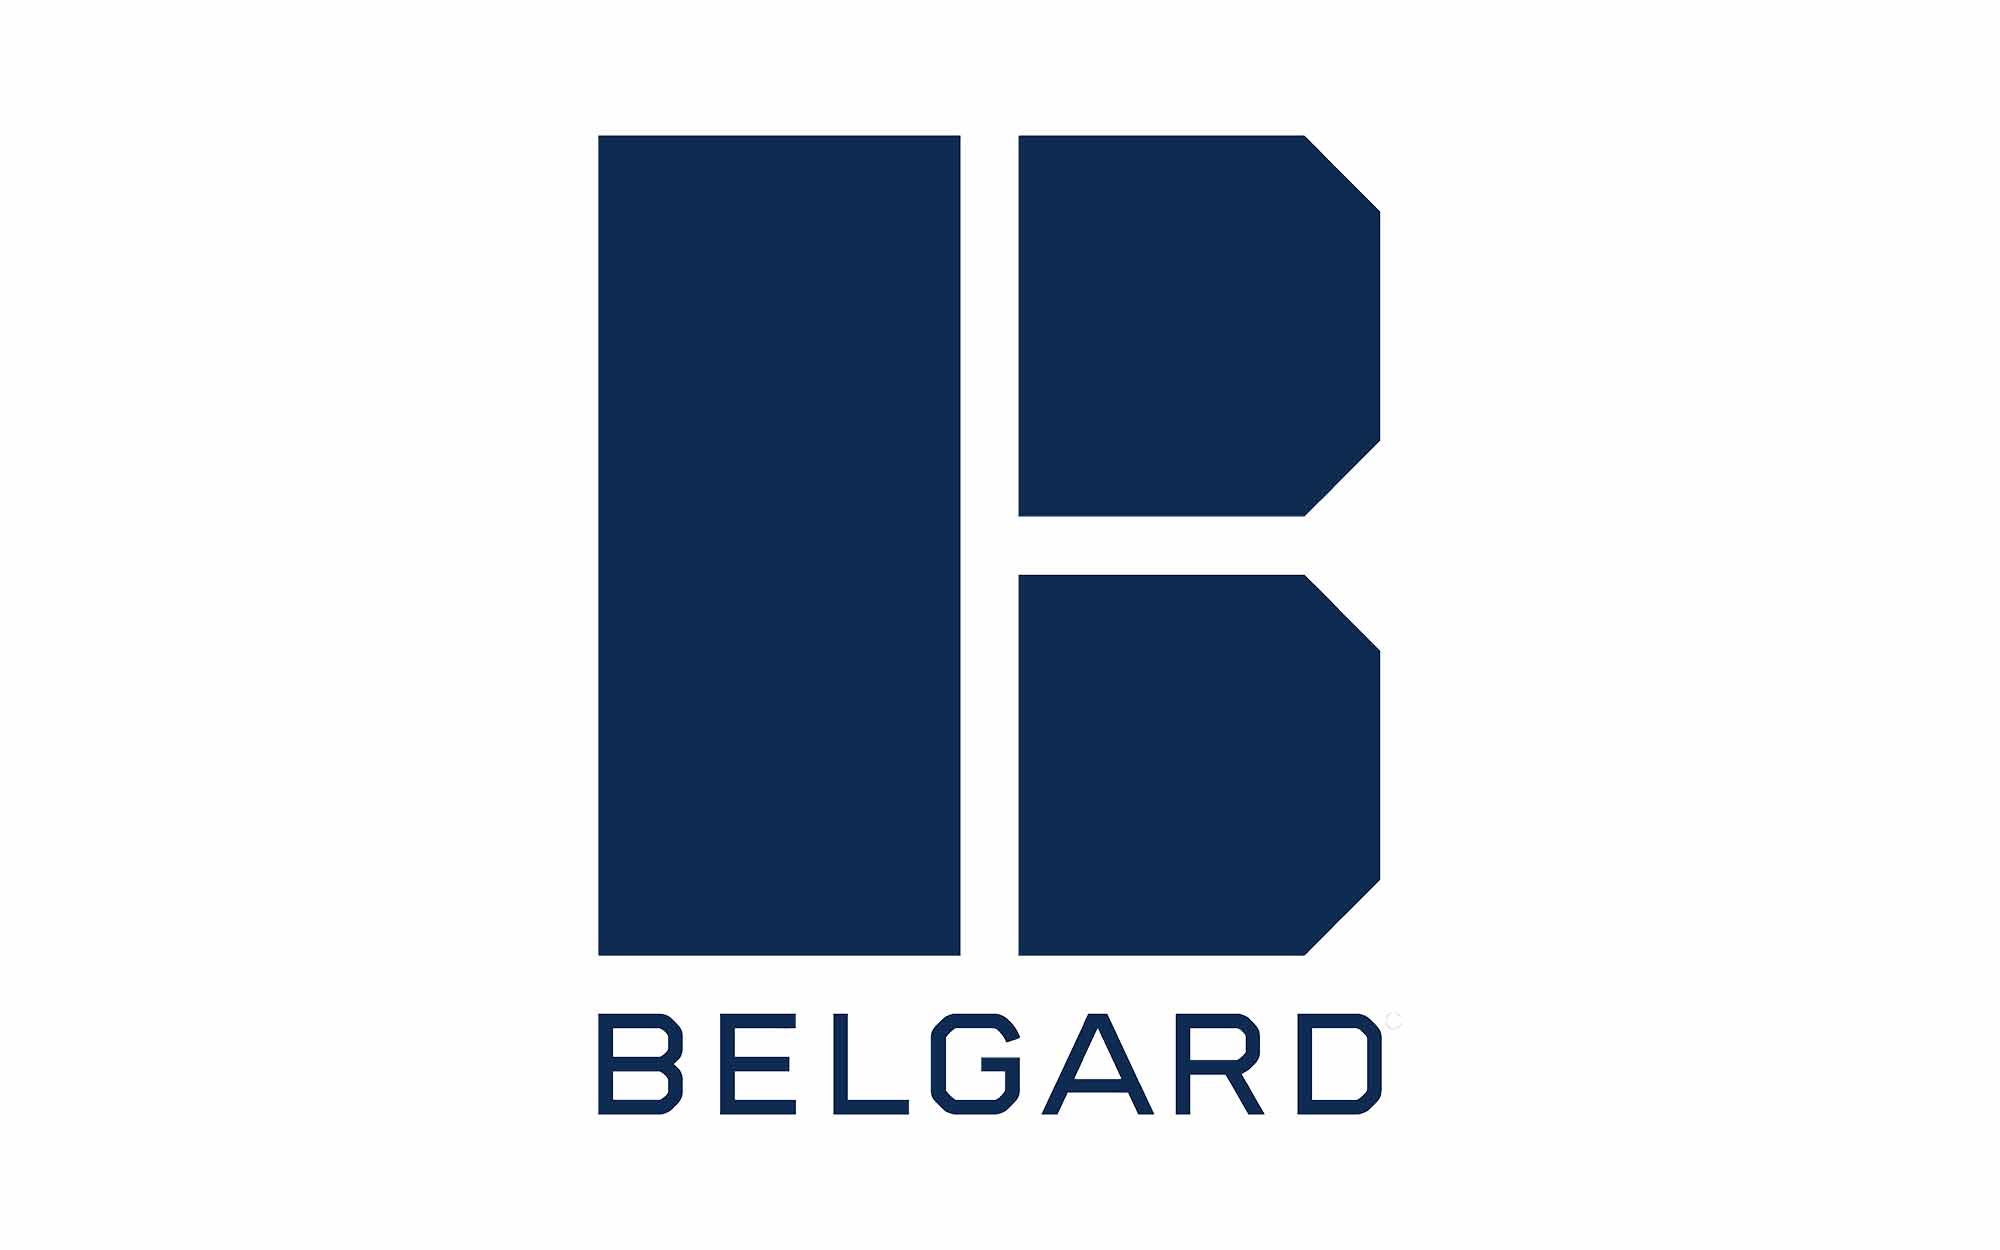 Belgard Pavers - Belgard offers a variety of concrete pavers, including pavers with the look and feel of brick and stone.